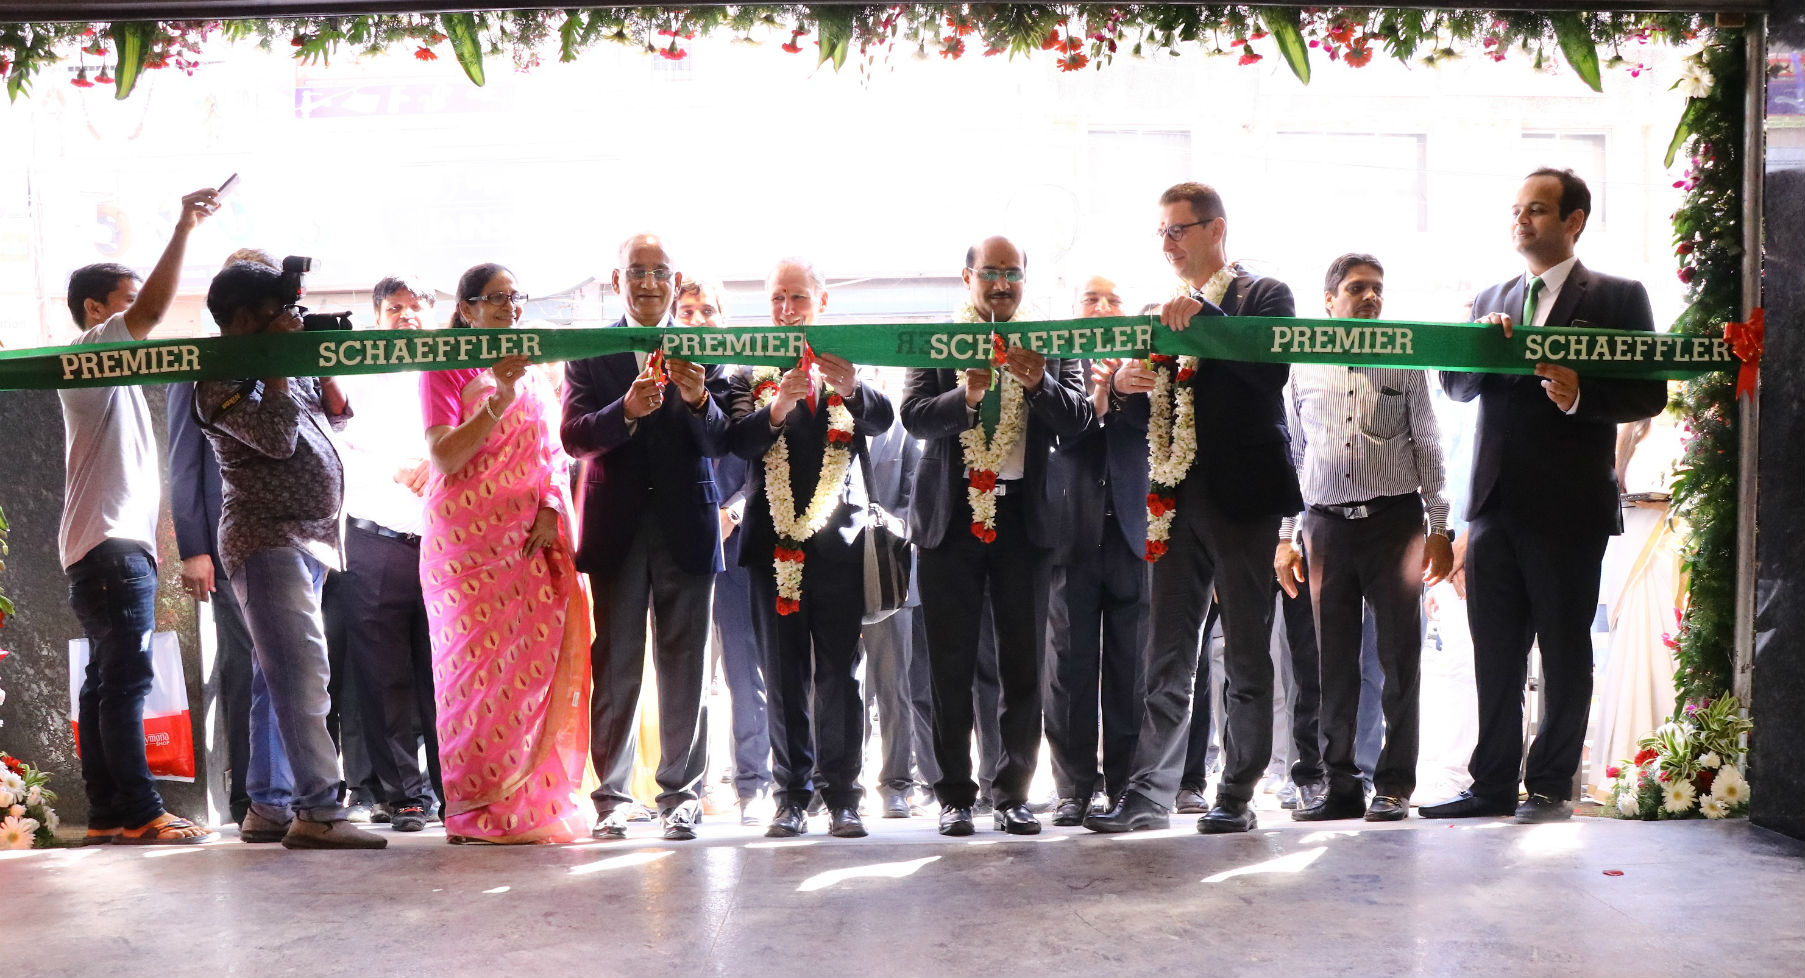 Premier establishes a new Southern Region headquarter at Chennai - 10 December,  2019